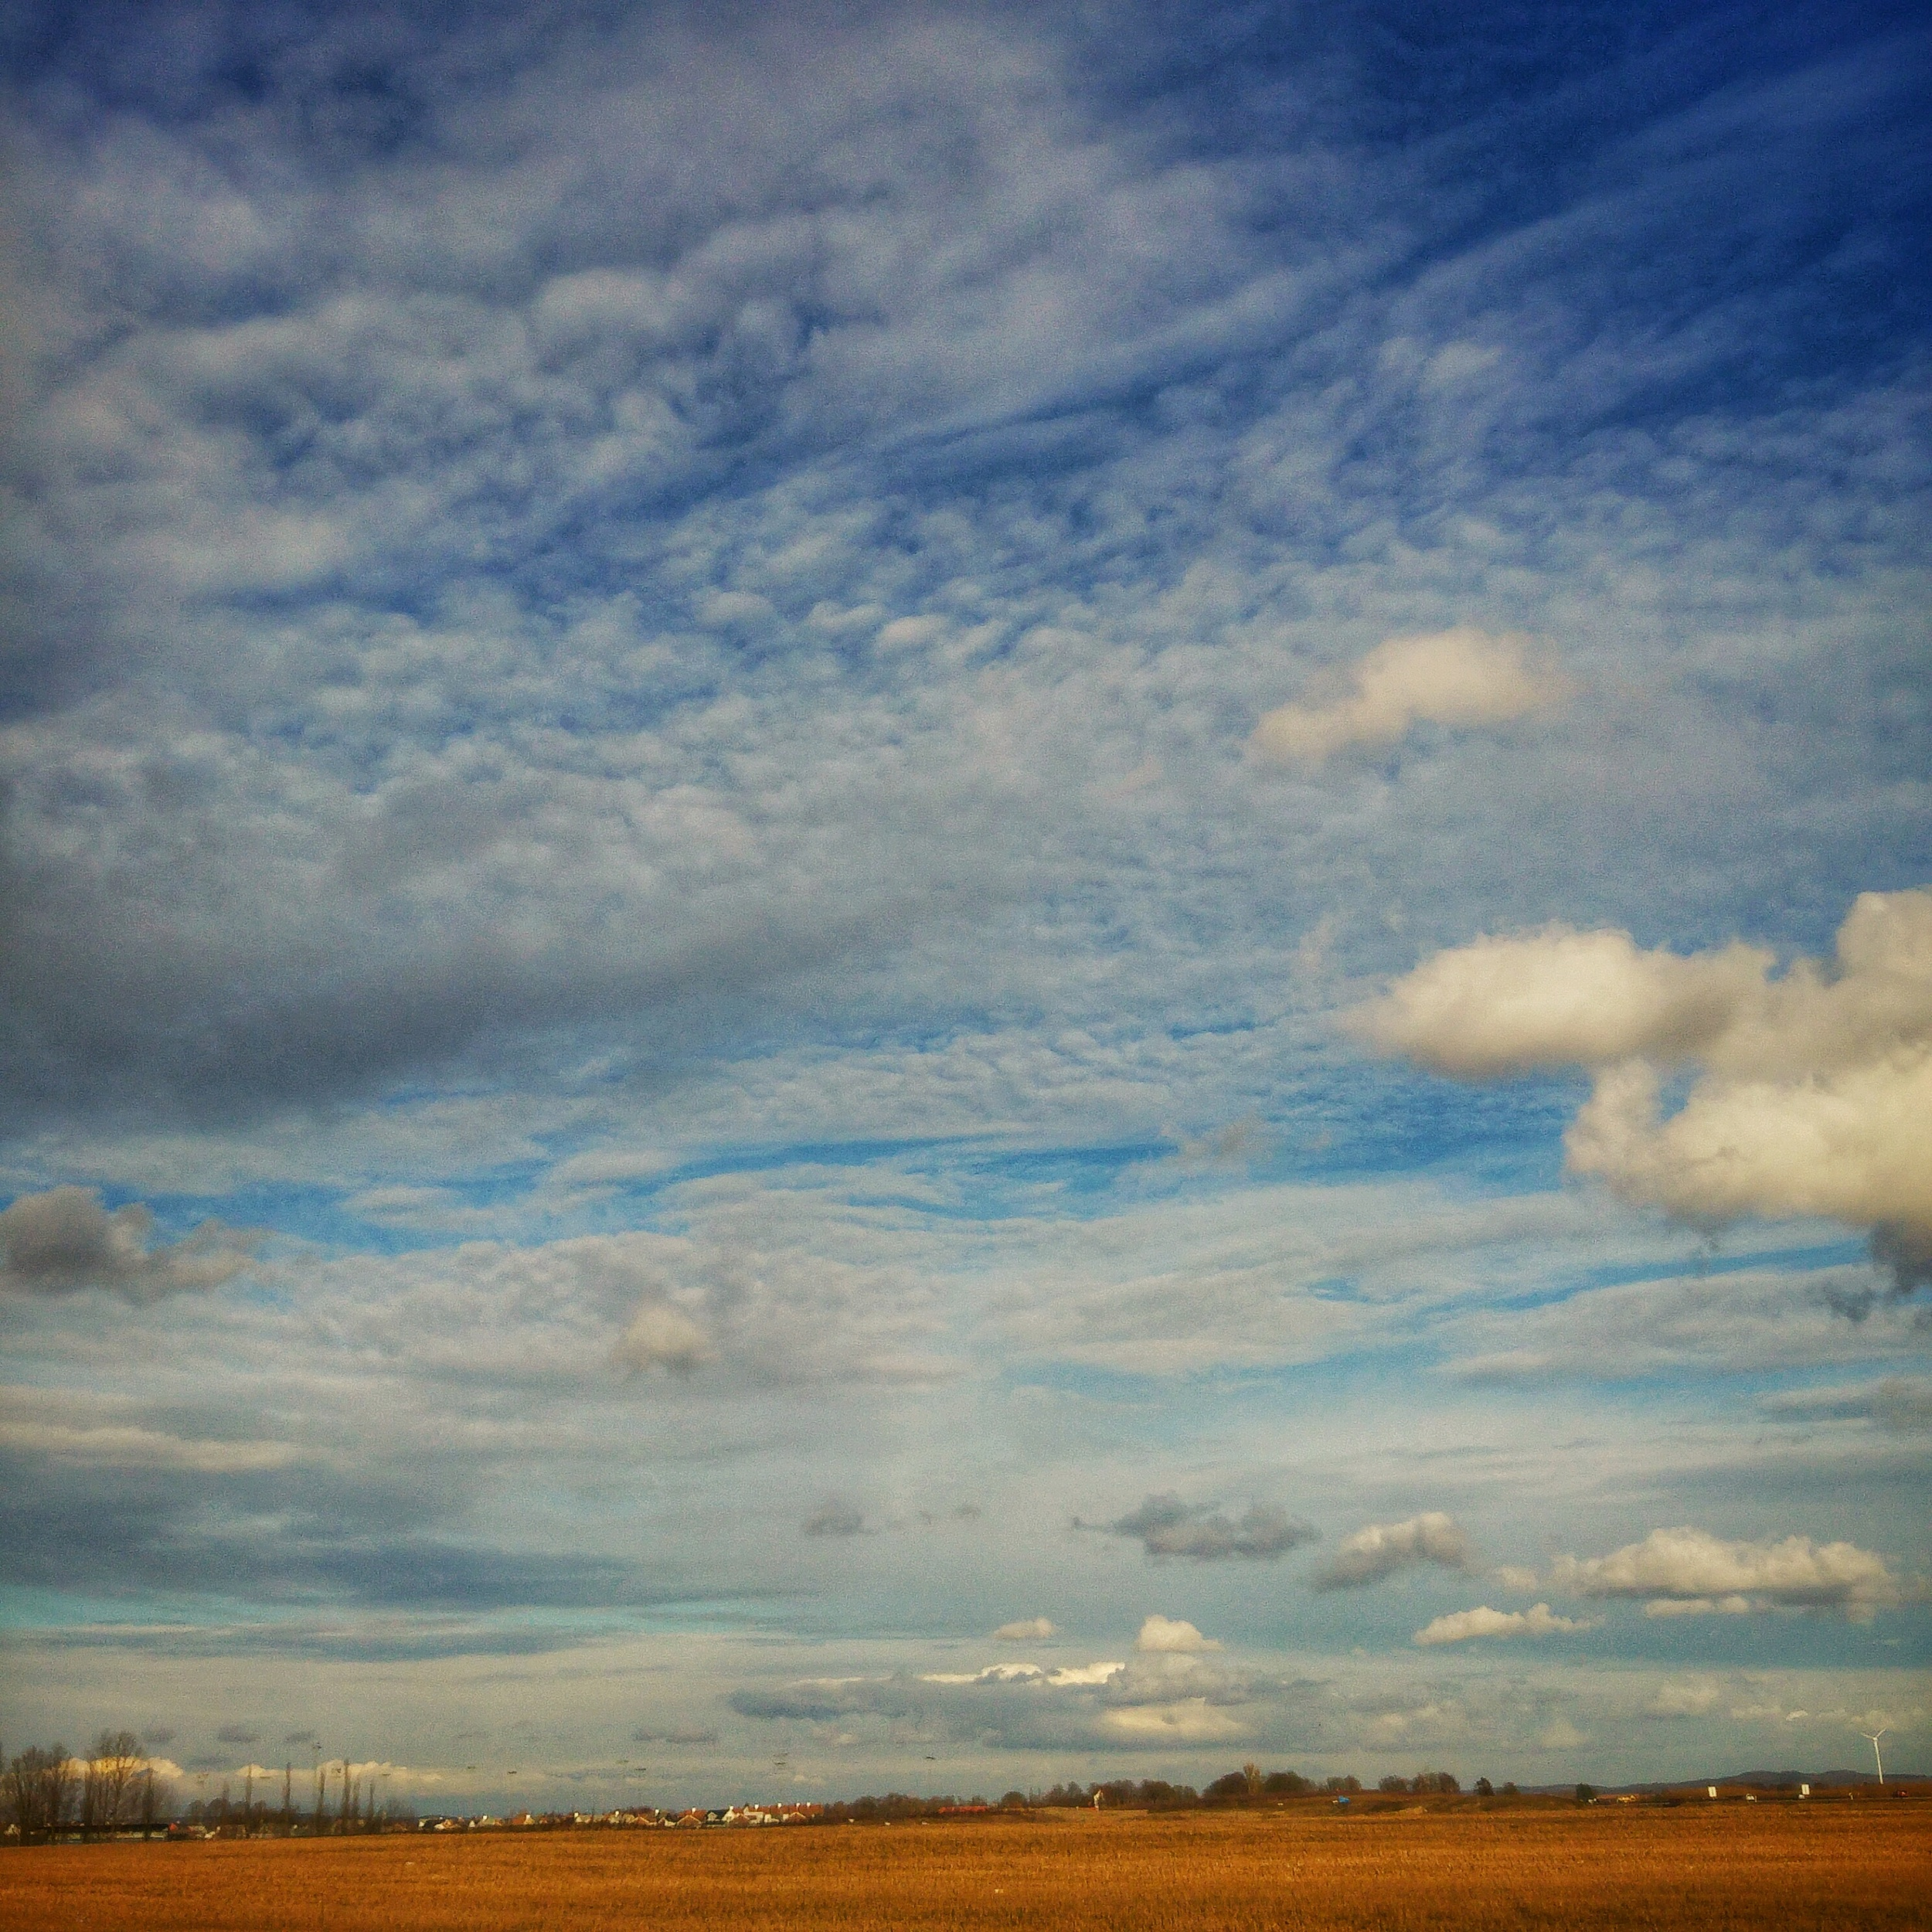 INSTAGRAM 365 Day 81: Small Town, Big Sky